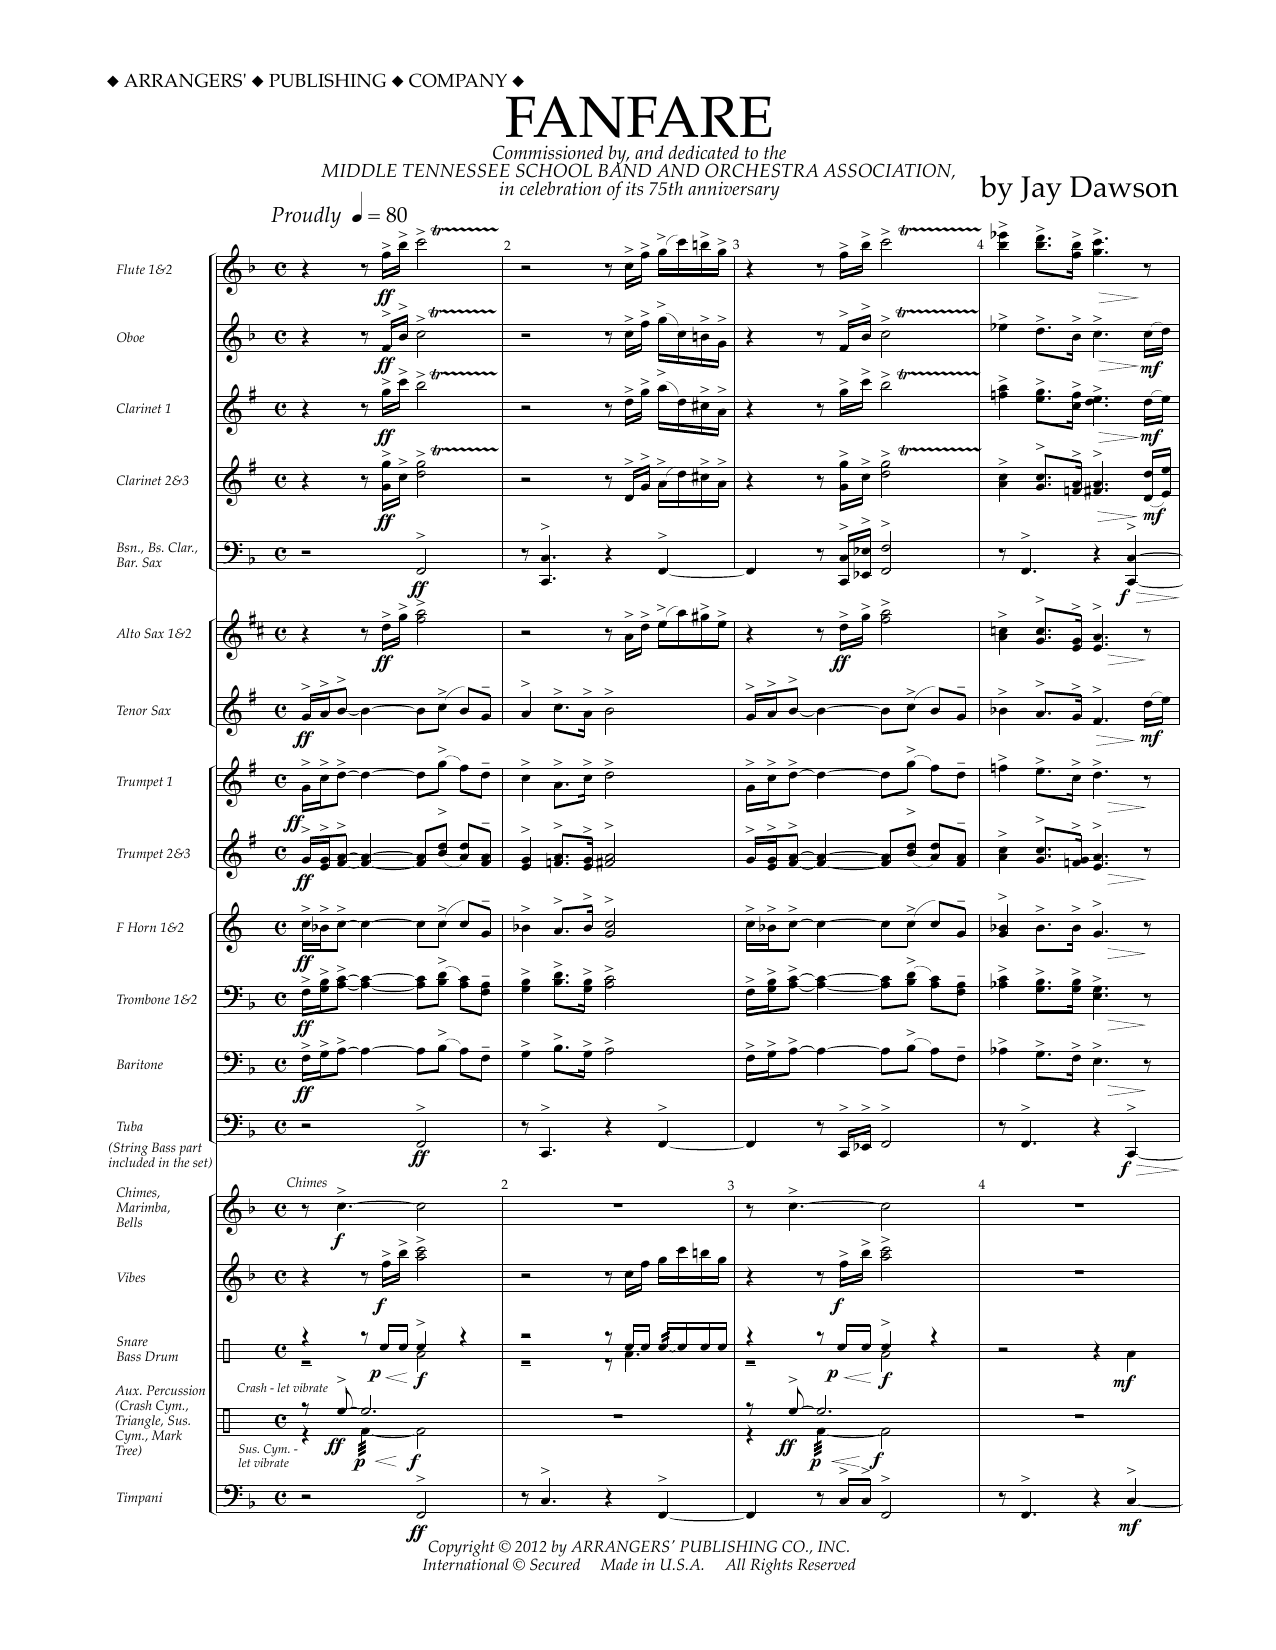 Jay Dawson Fanfare - Full Score sheet music preview music notes and score for Concert Band including 12 page(s)